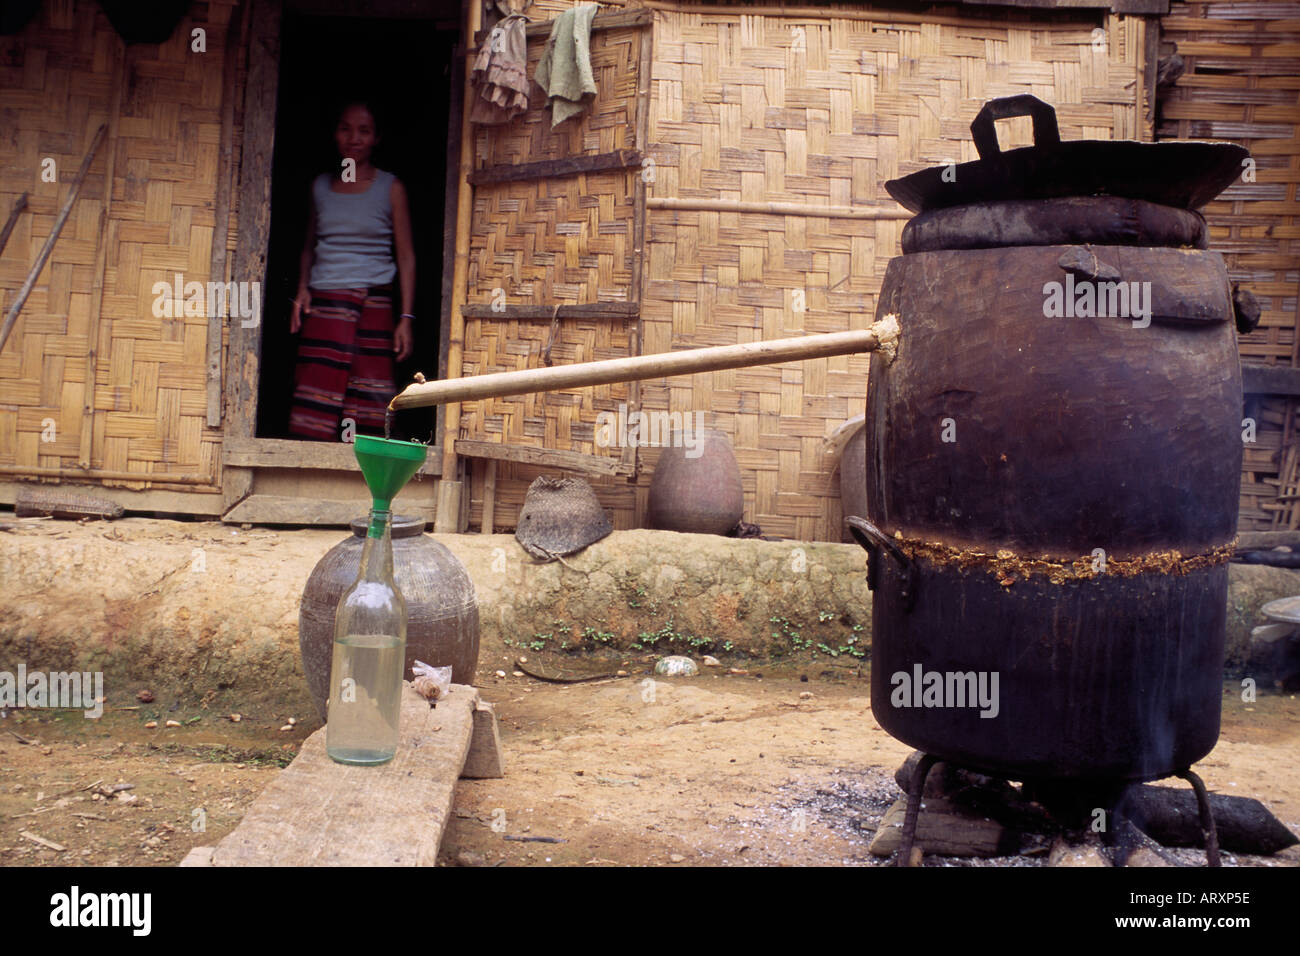 Moonshine still in a village in northern Laos 2004 - Stock Image